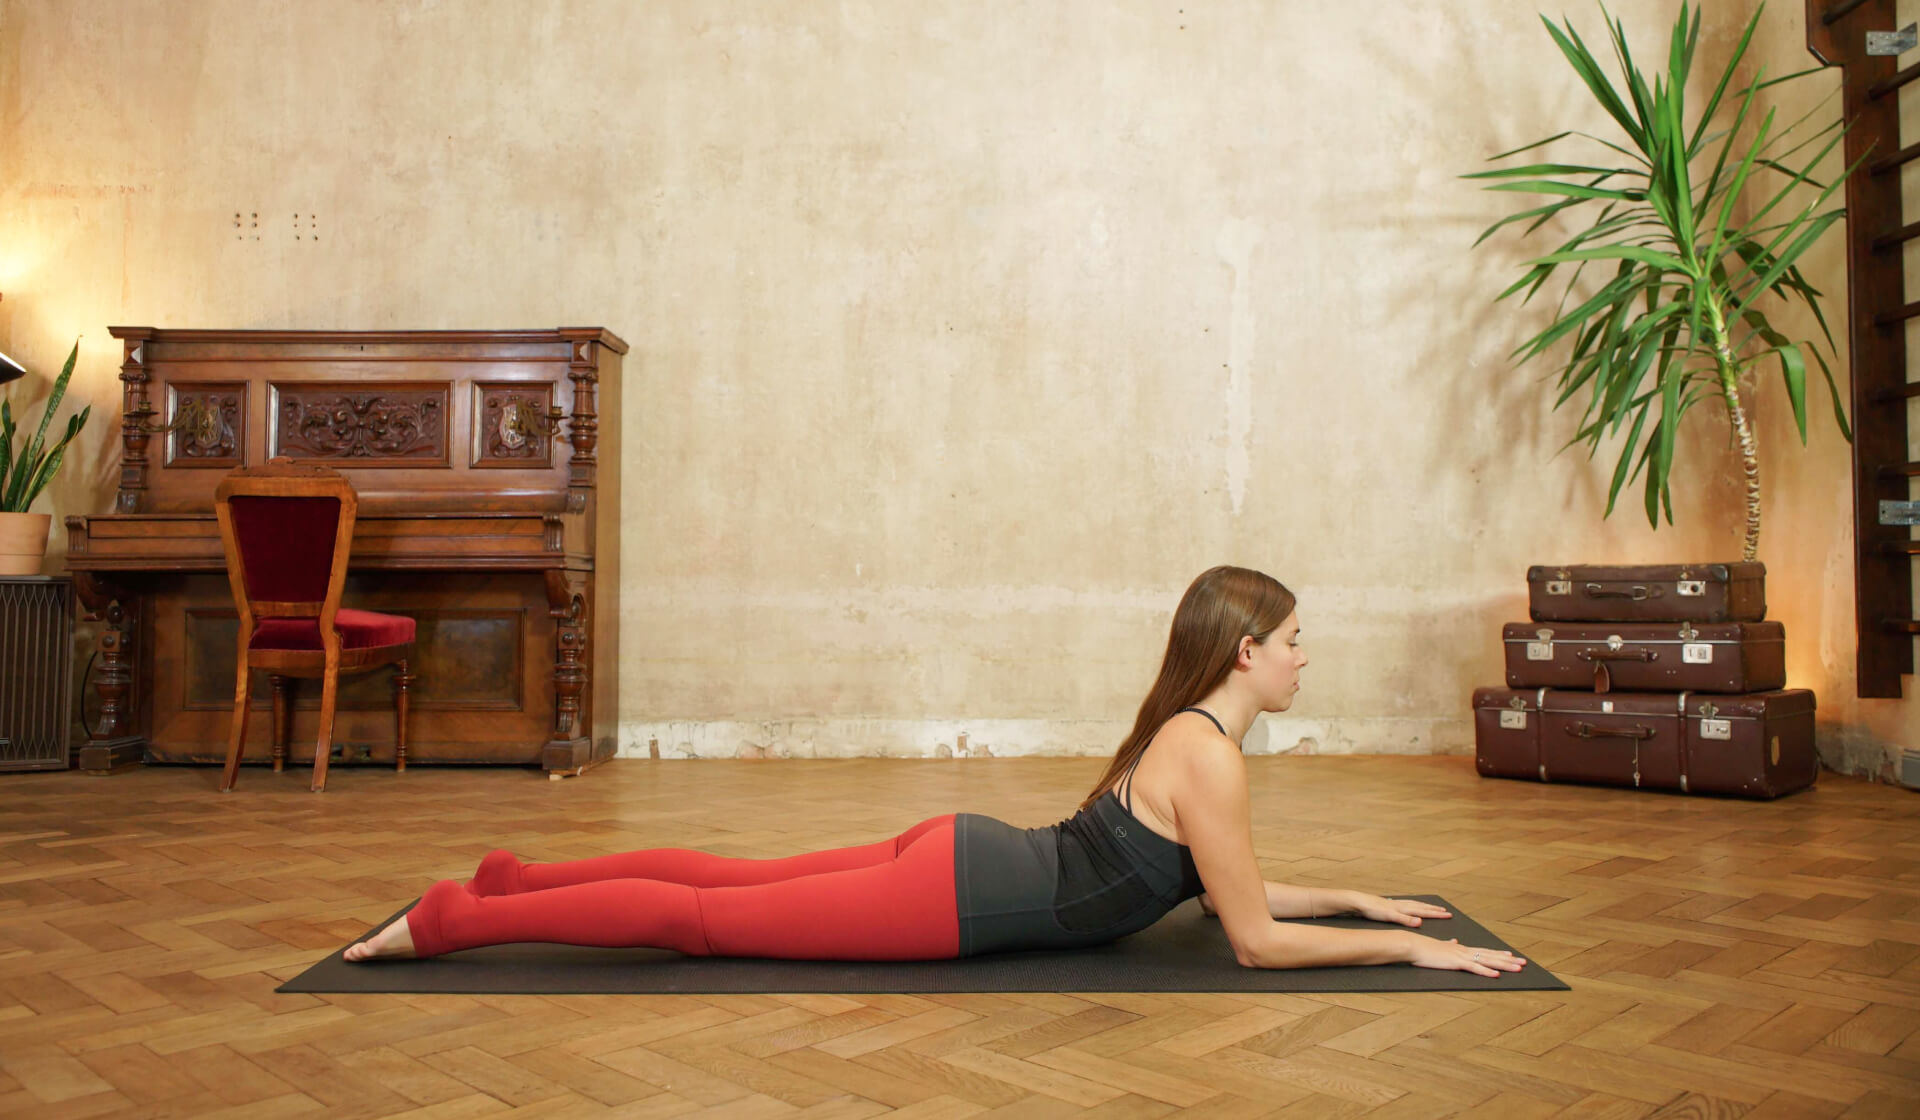 Yoga teacher in black tank top and red yoga pants on her belly in the backbend sphinx pose on a black yoga mat in front of a piano, beige wall, stack of suitcases, and green palm tree